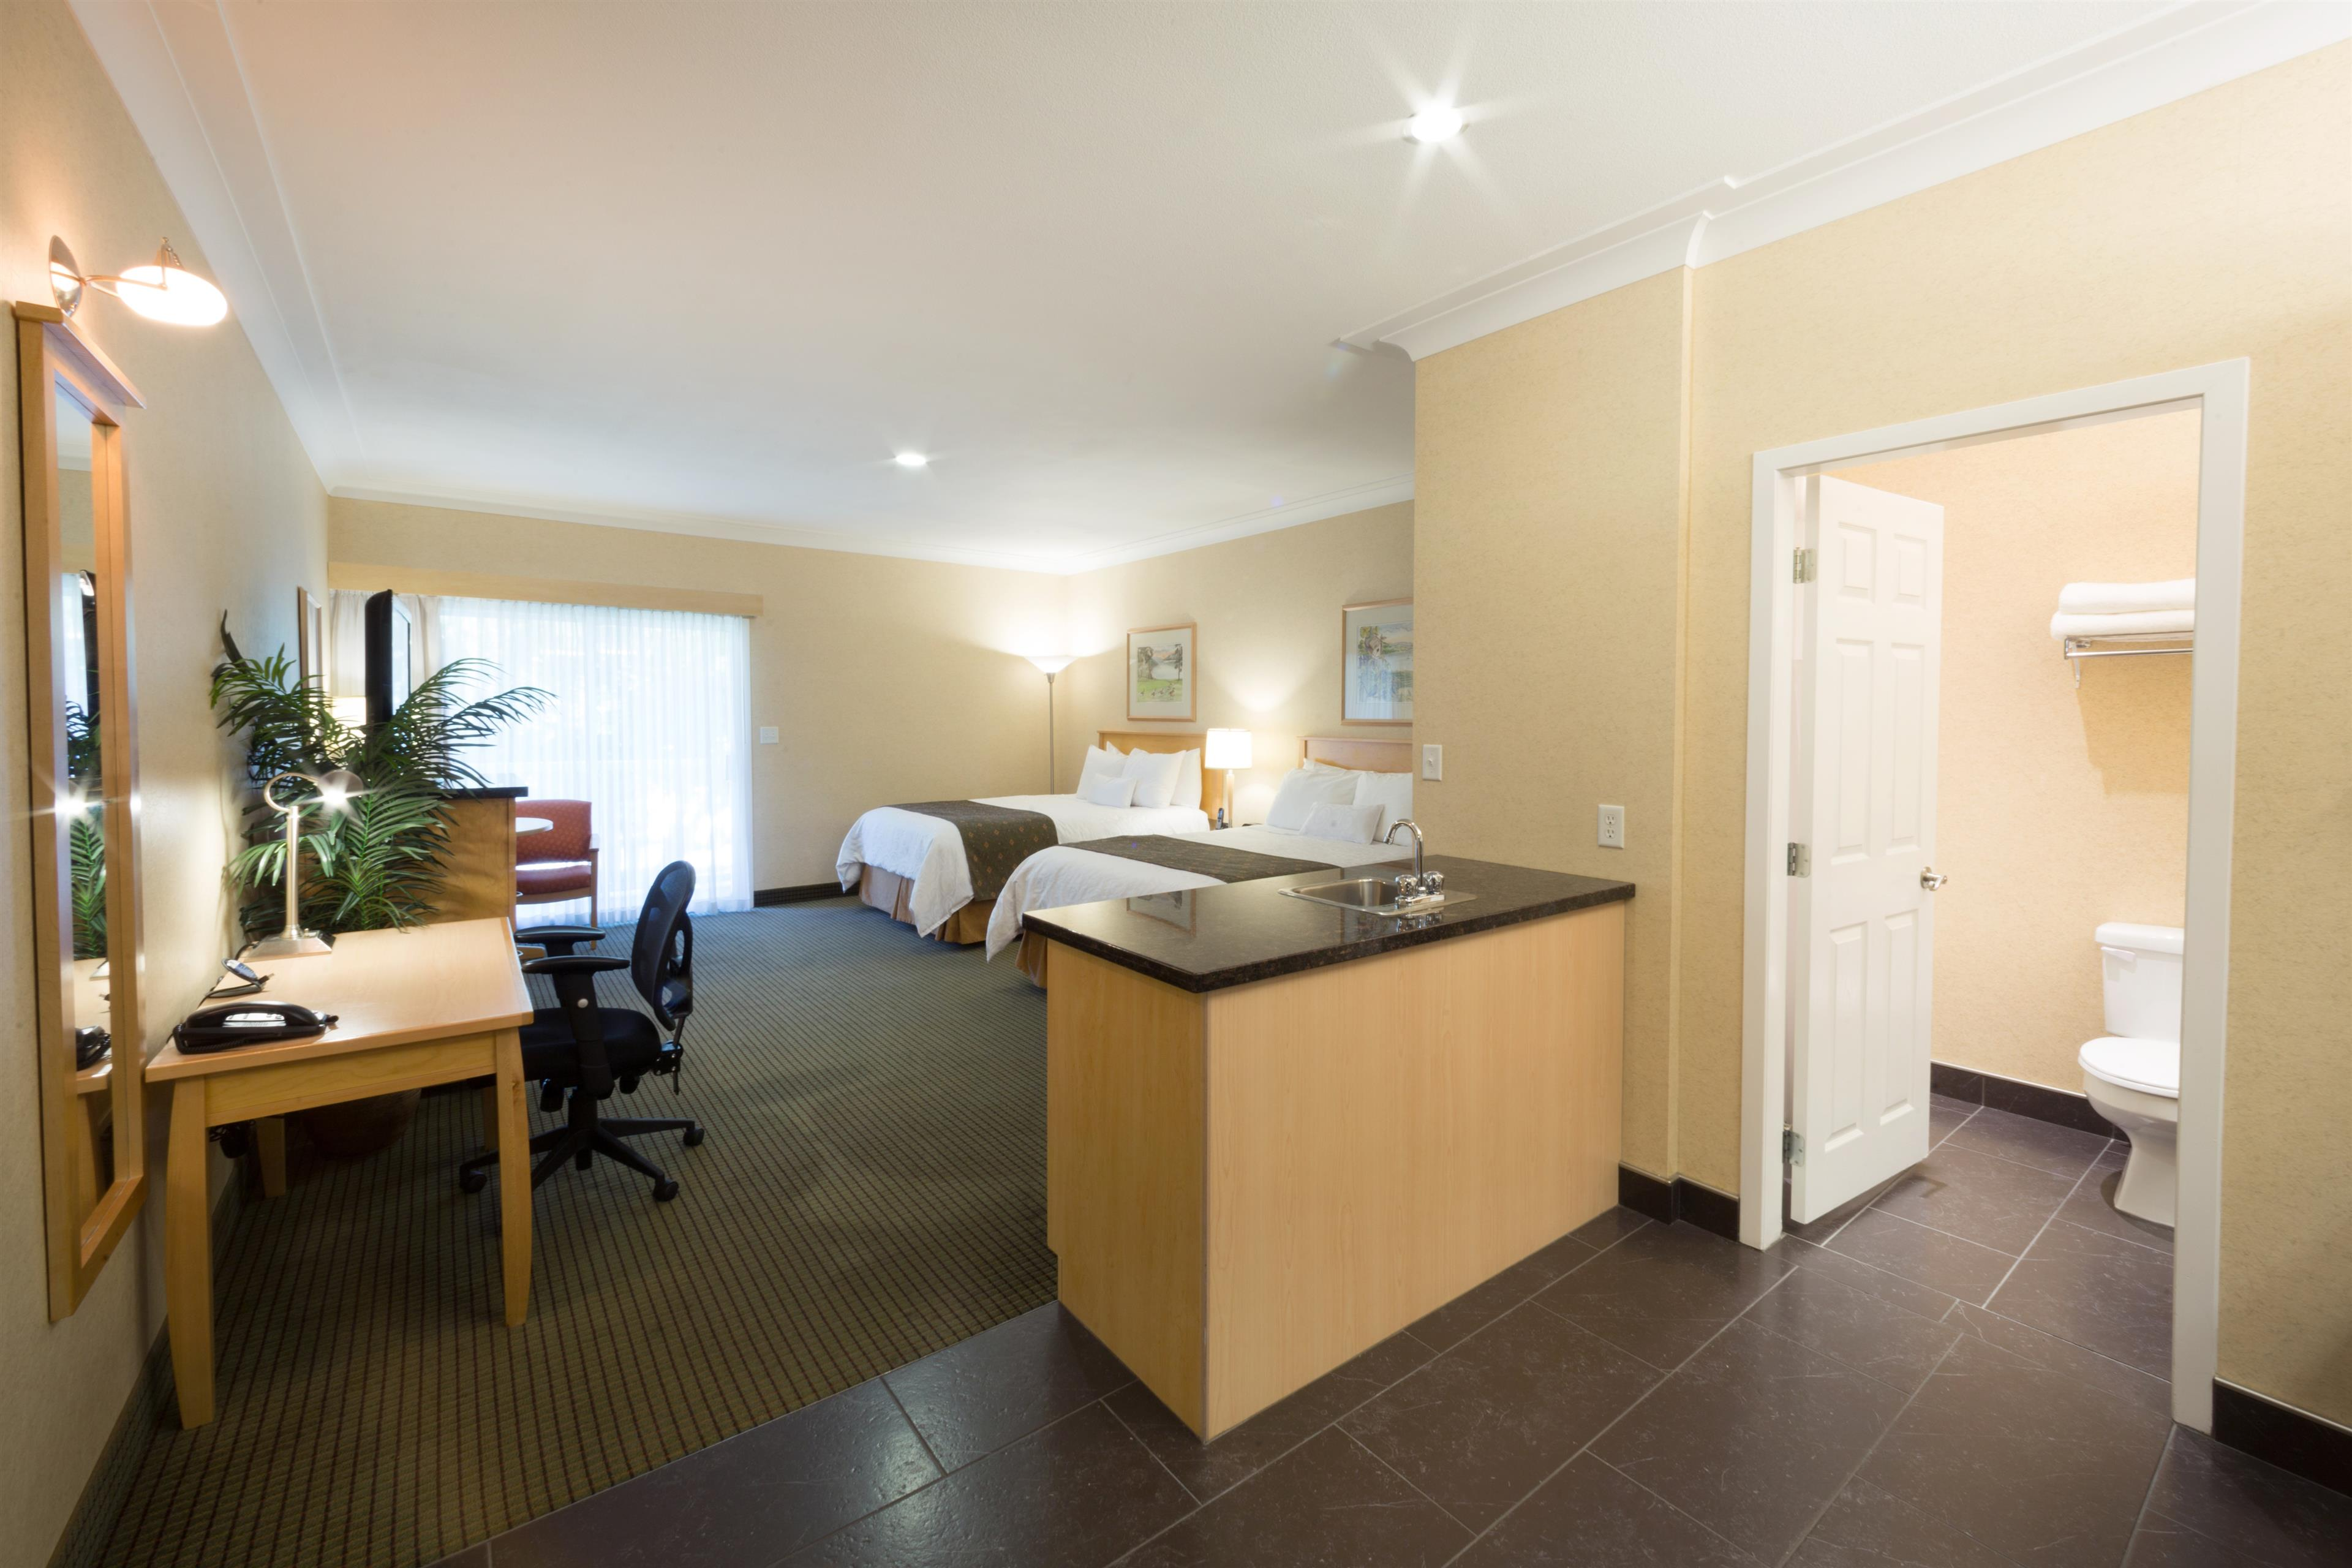 Best Western Plus Kelowna Hotel & Suites in Kelowna: Deluxe with 2 Queens & Wetbar